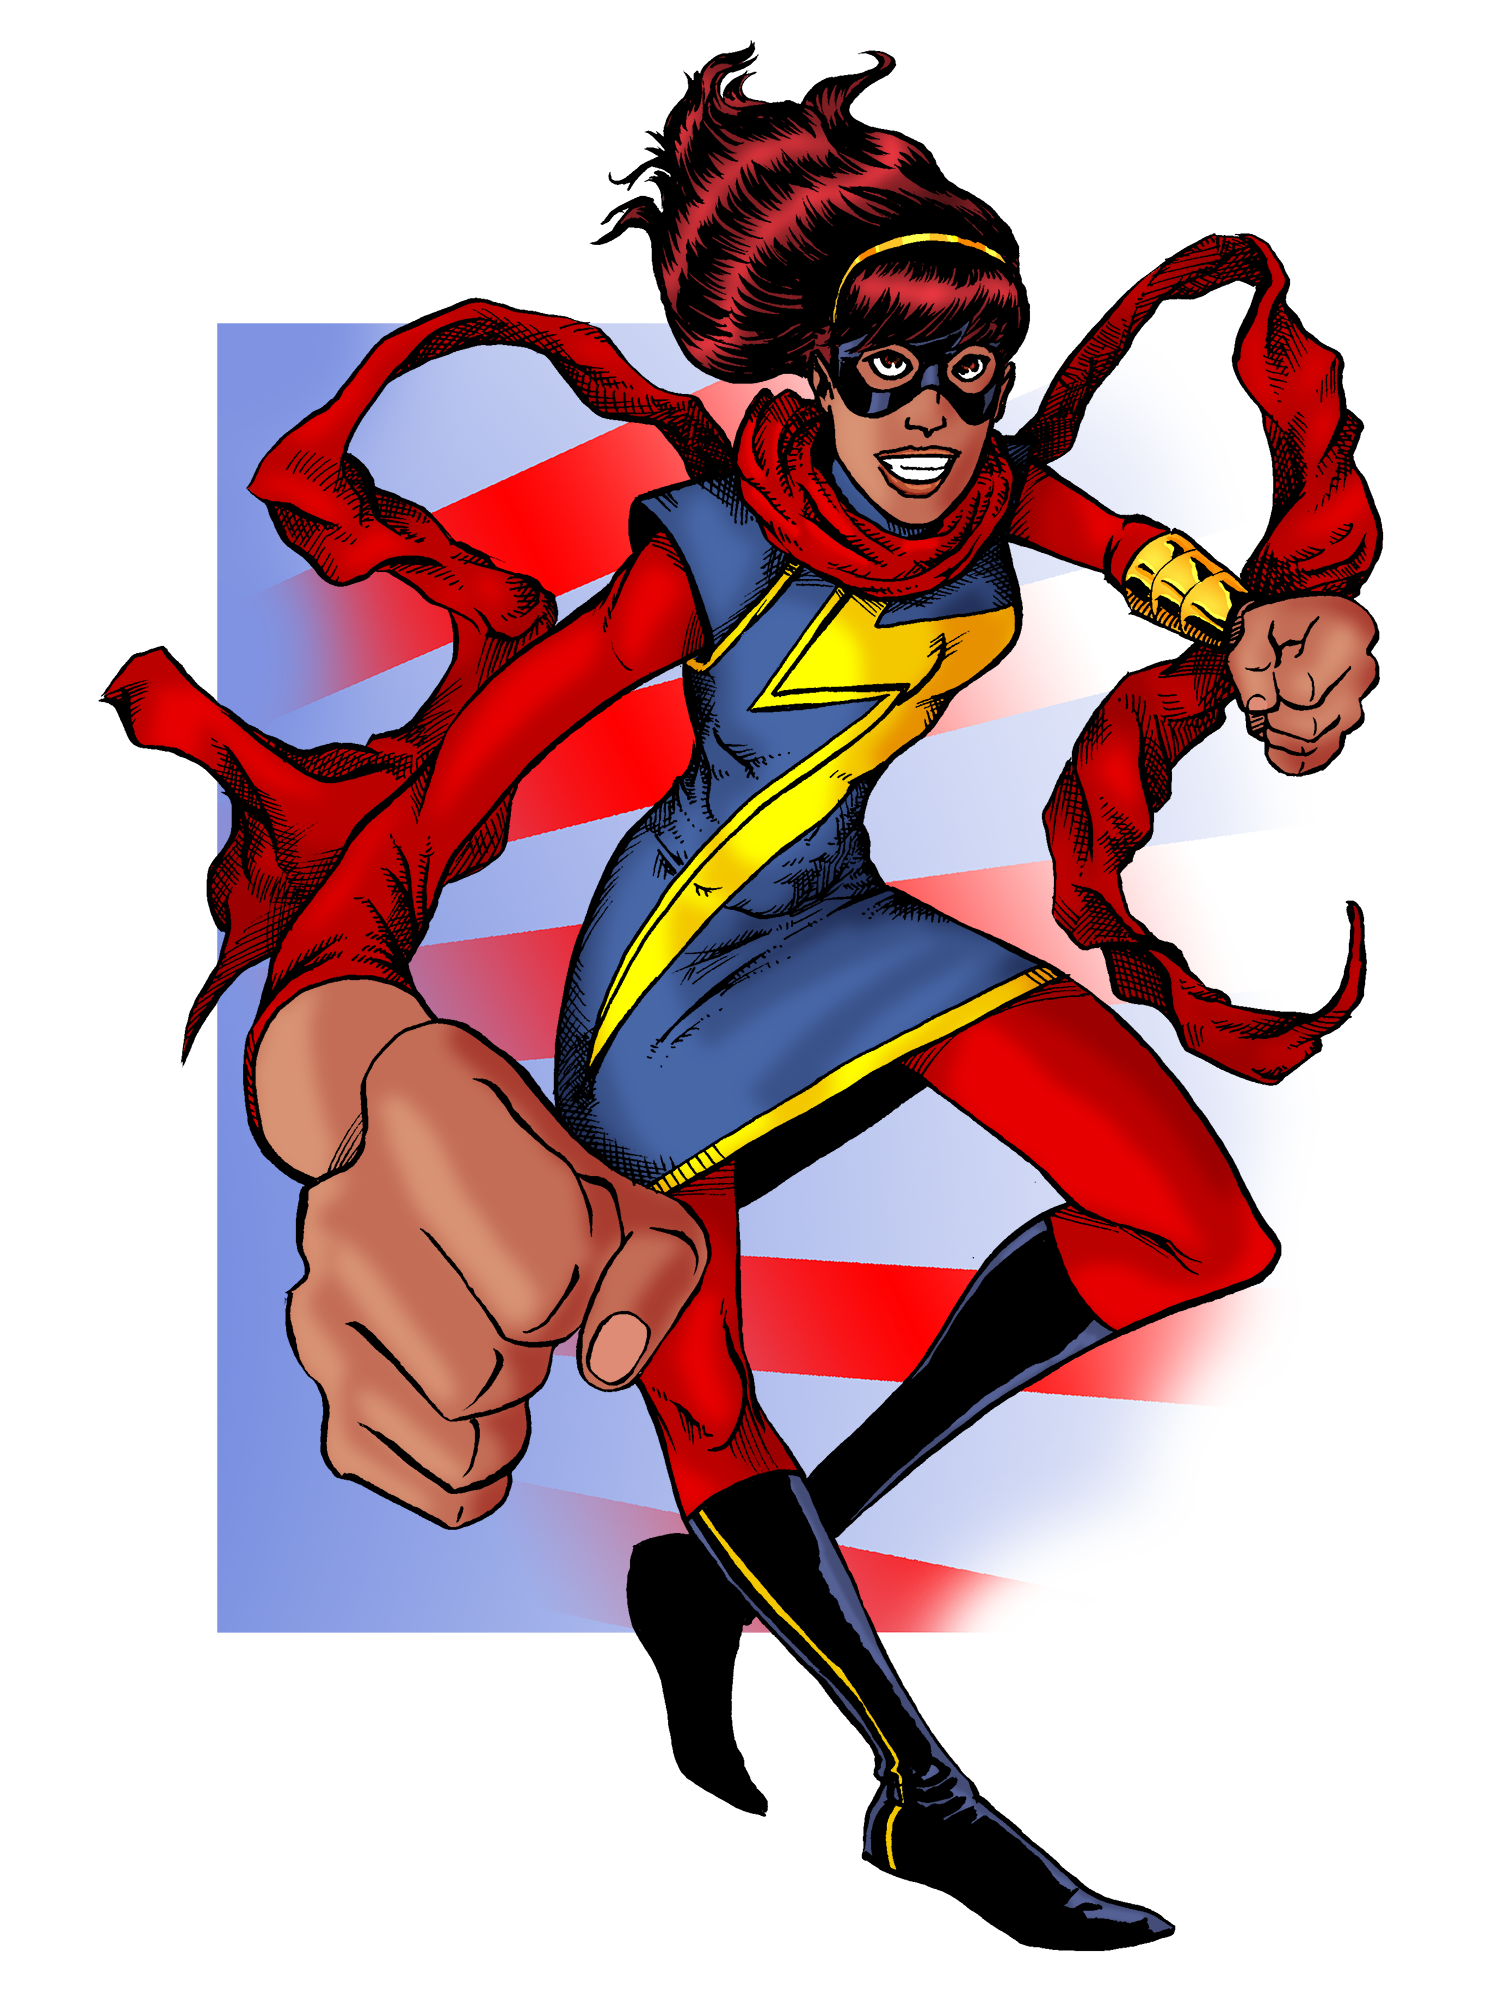 730. Ms. Marvel